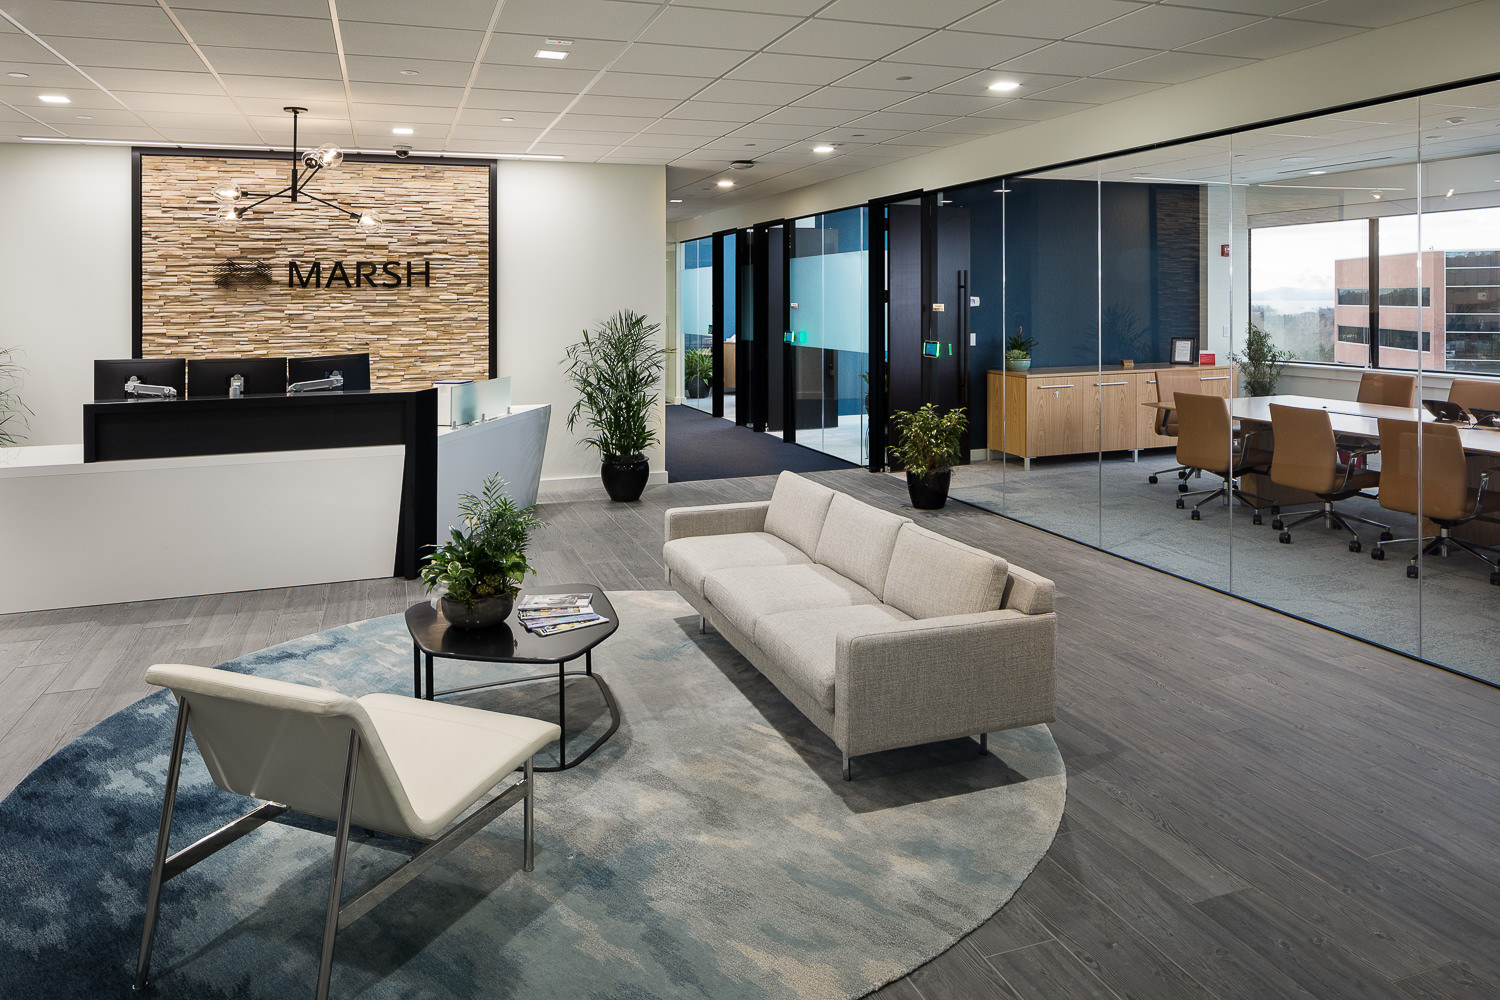 A modern reception area with views into the glass walled conference room at an insurance firm.